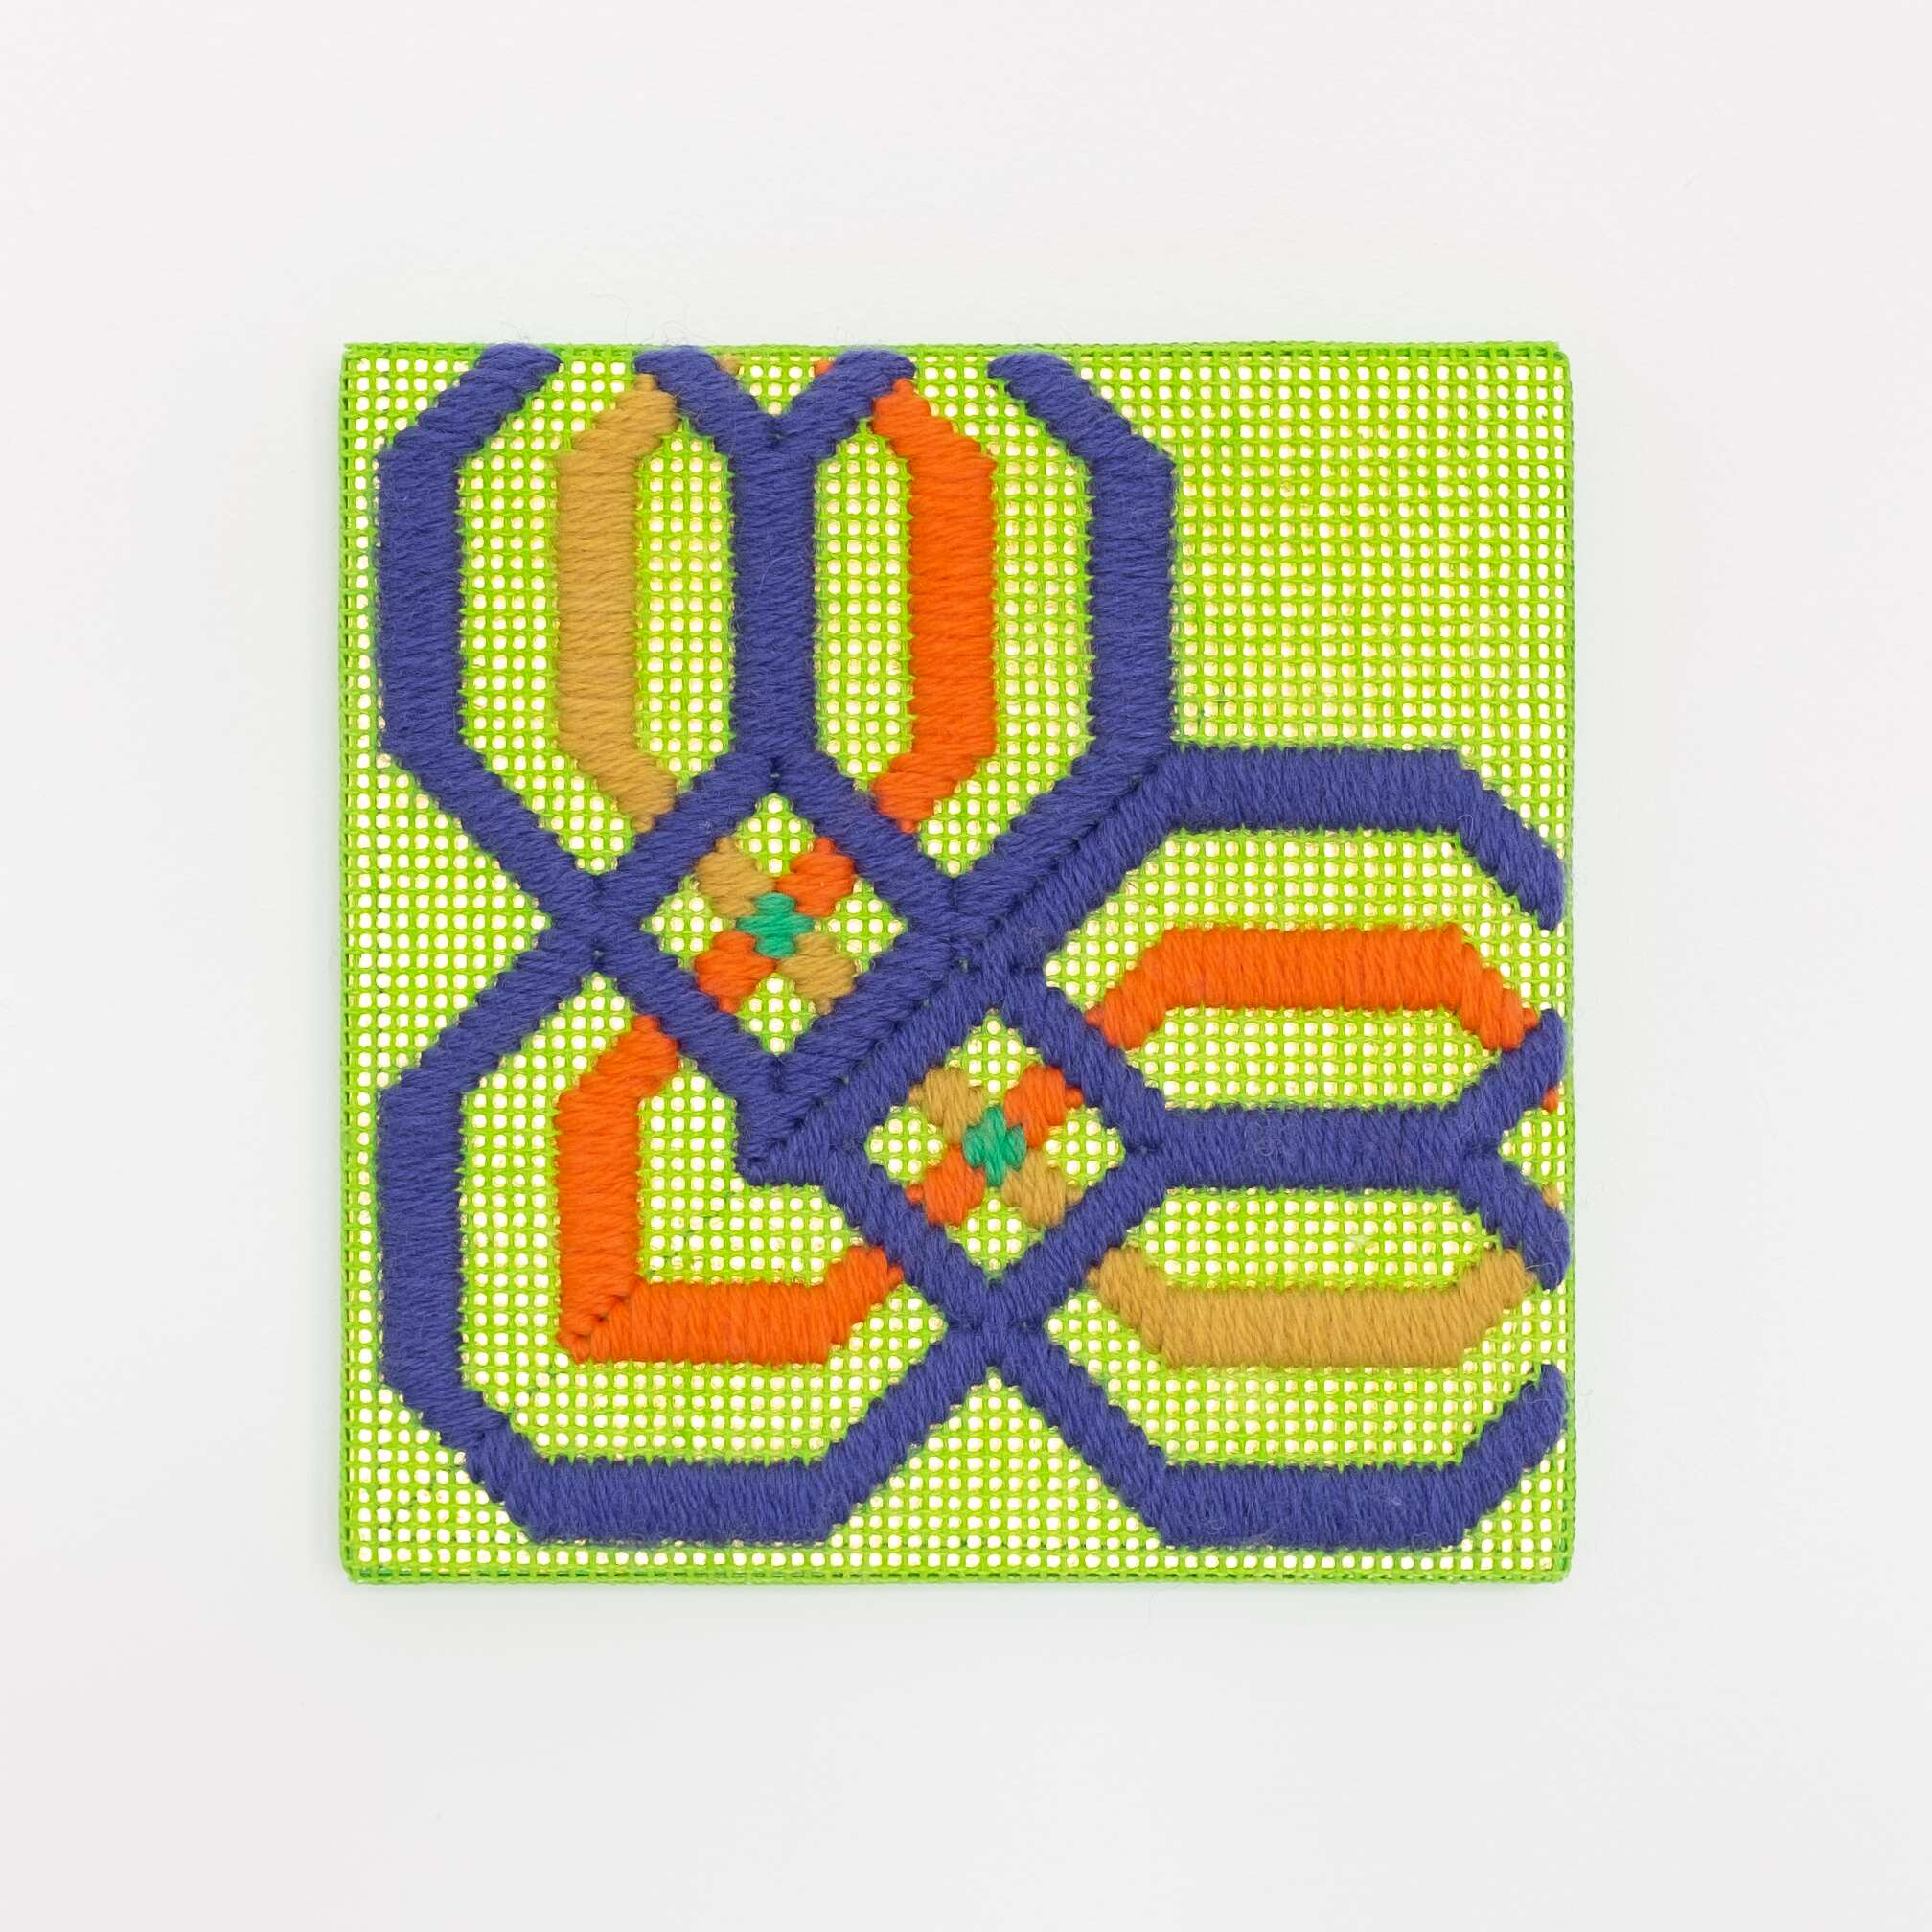 Border fragment [purple-orange-yellow on green], Hand-embroidered wool thread and acrylic paint on canvas over gilded panel, 2021